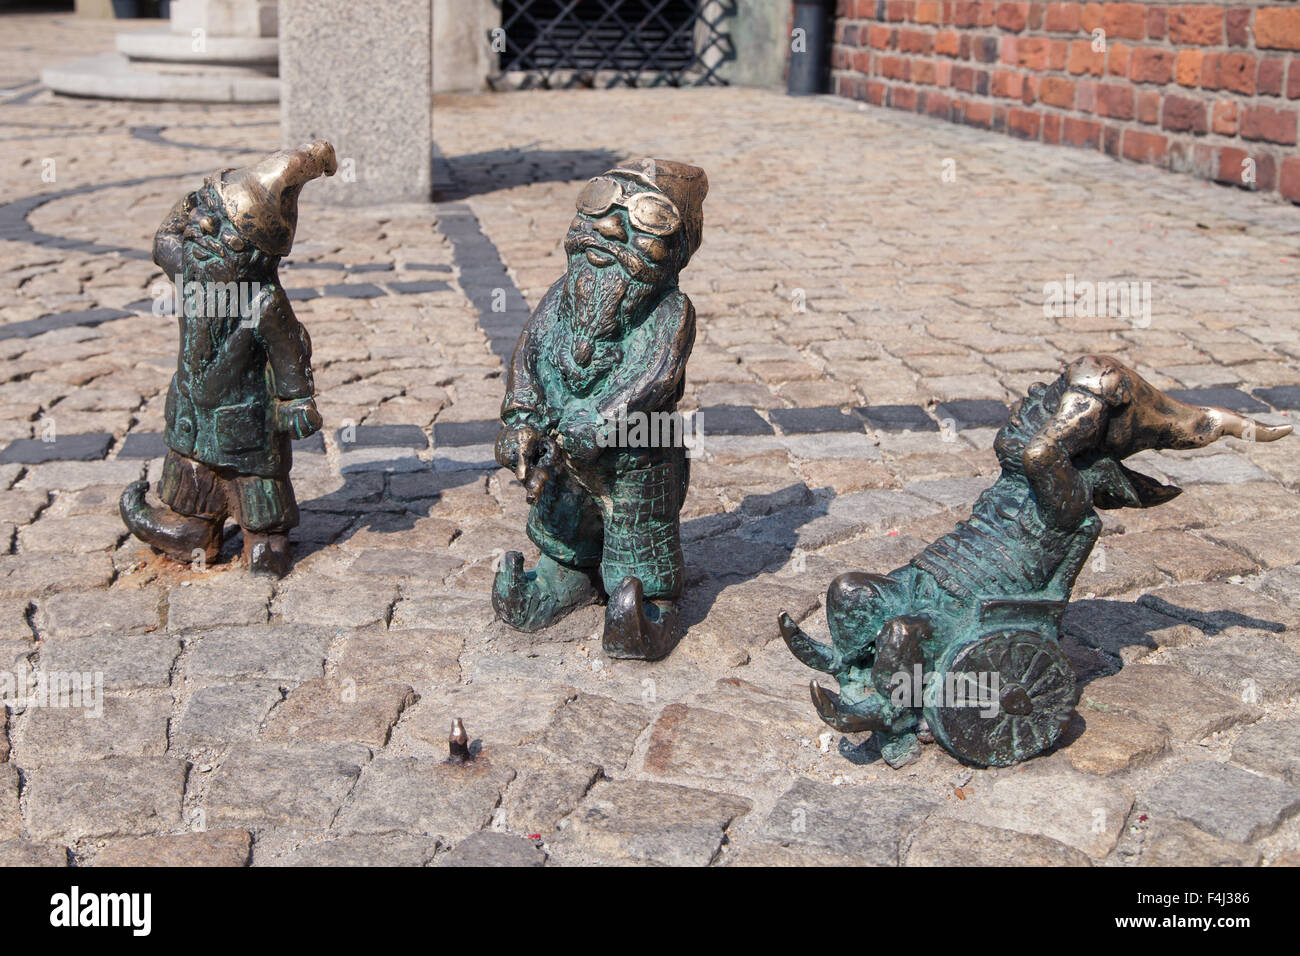 Disabled dwarves on the Market Square of Wroclaw, Poland. - Stock Image